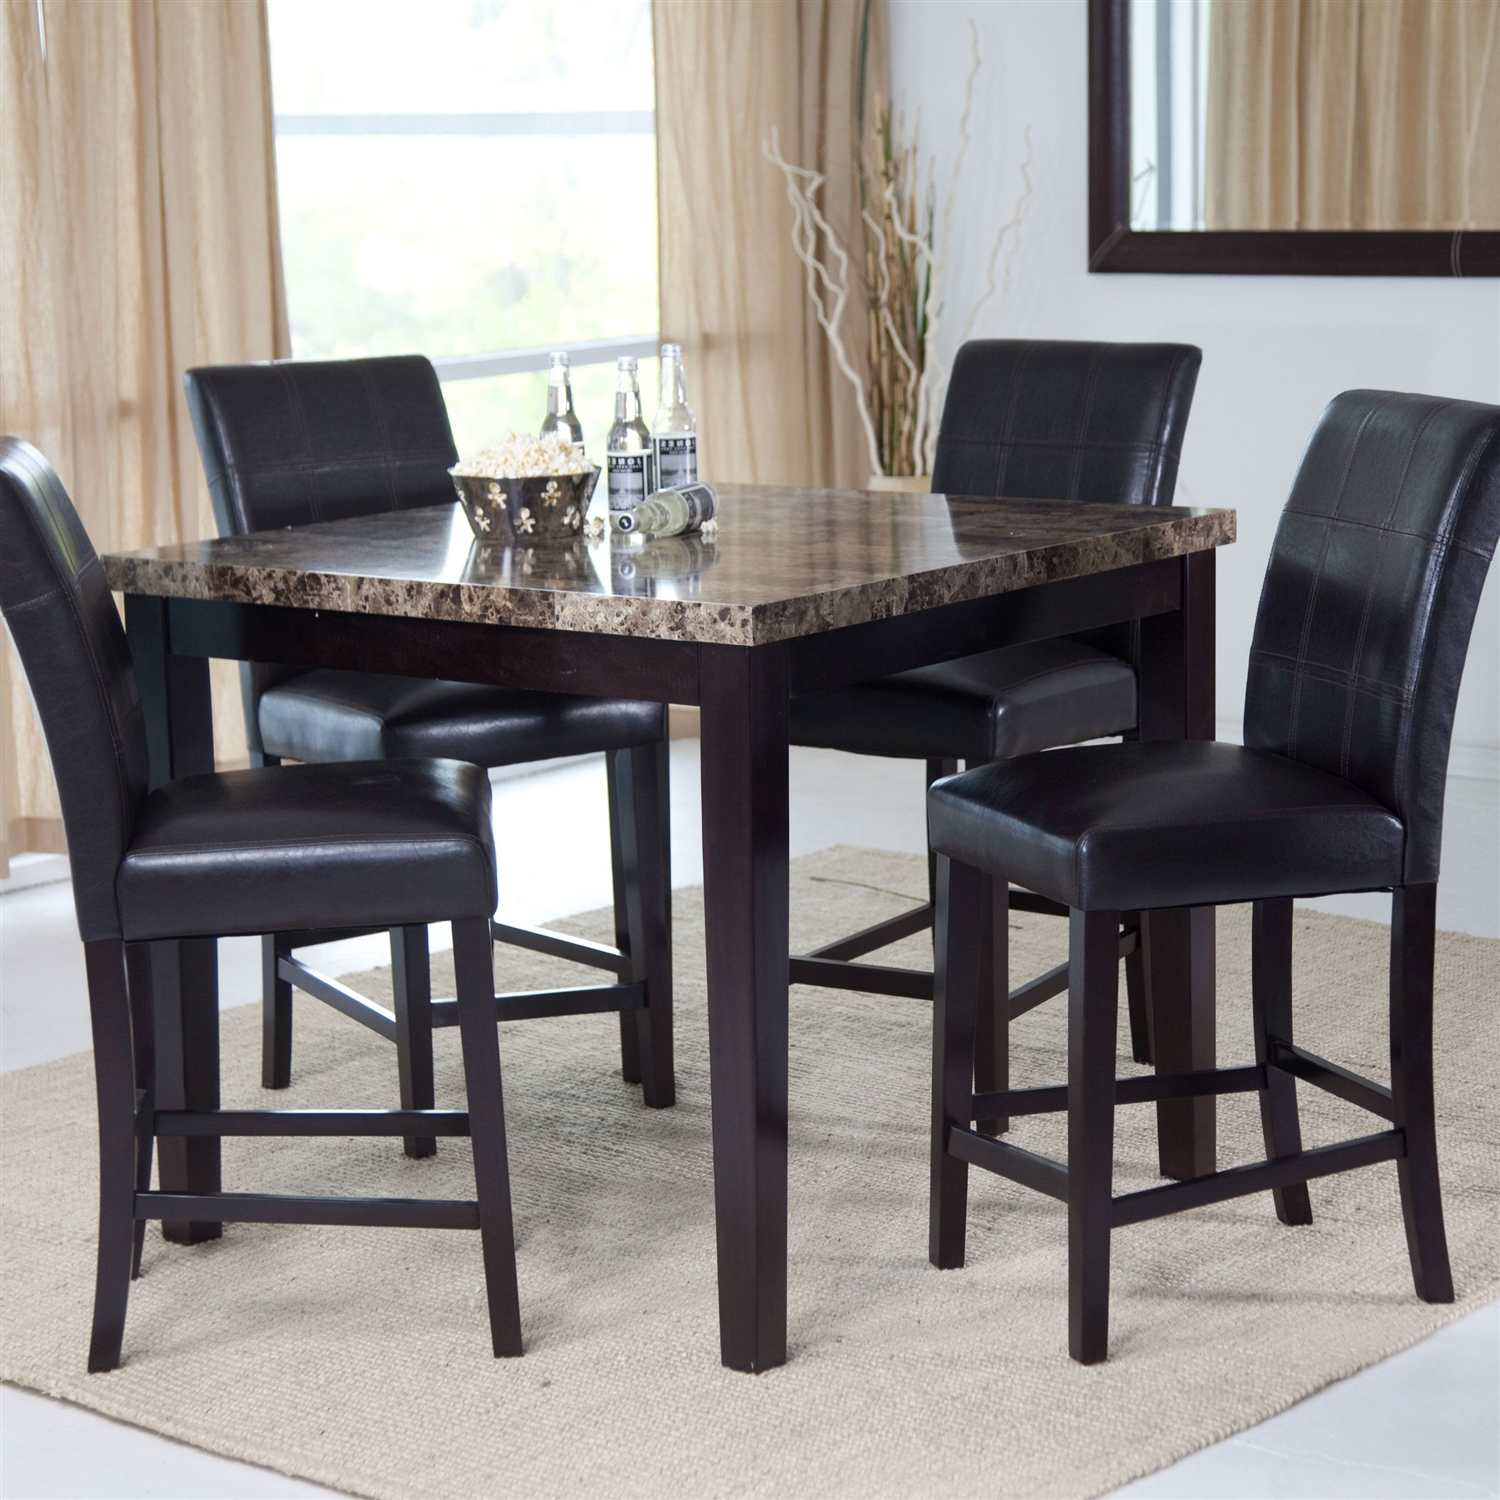 Contemporary 42 X 42 Inch Counter Height Dining Table With Pertaining To Current Counter Height Dining Tables (View 13 of 15)